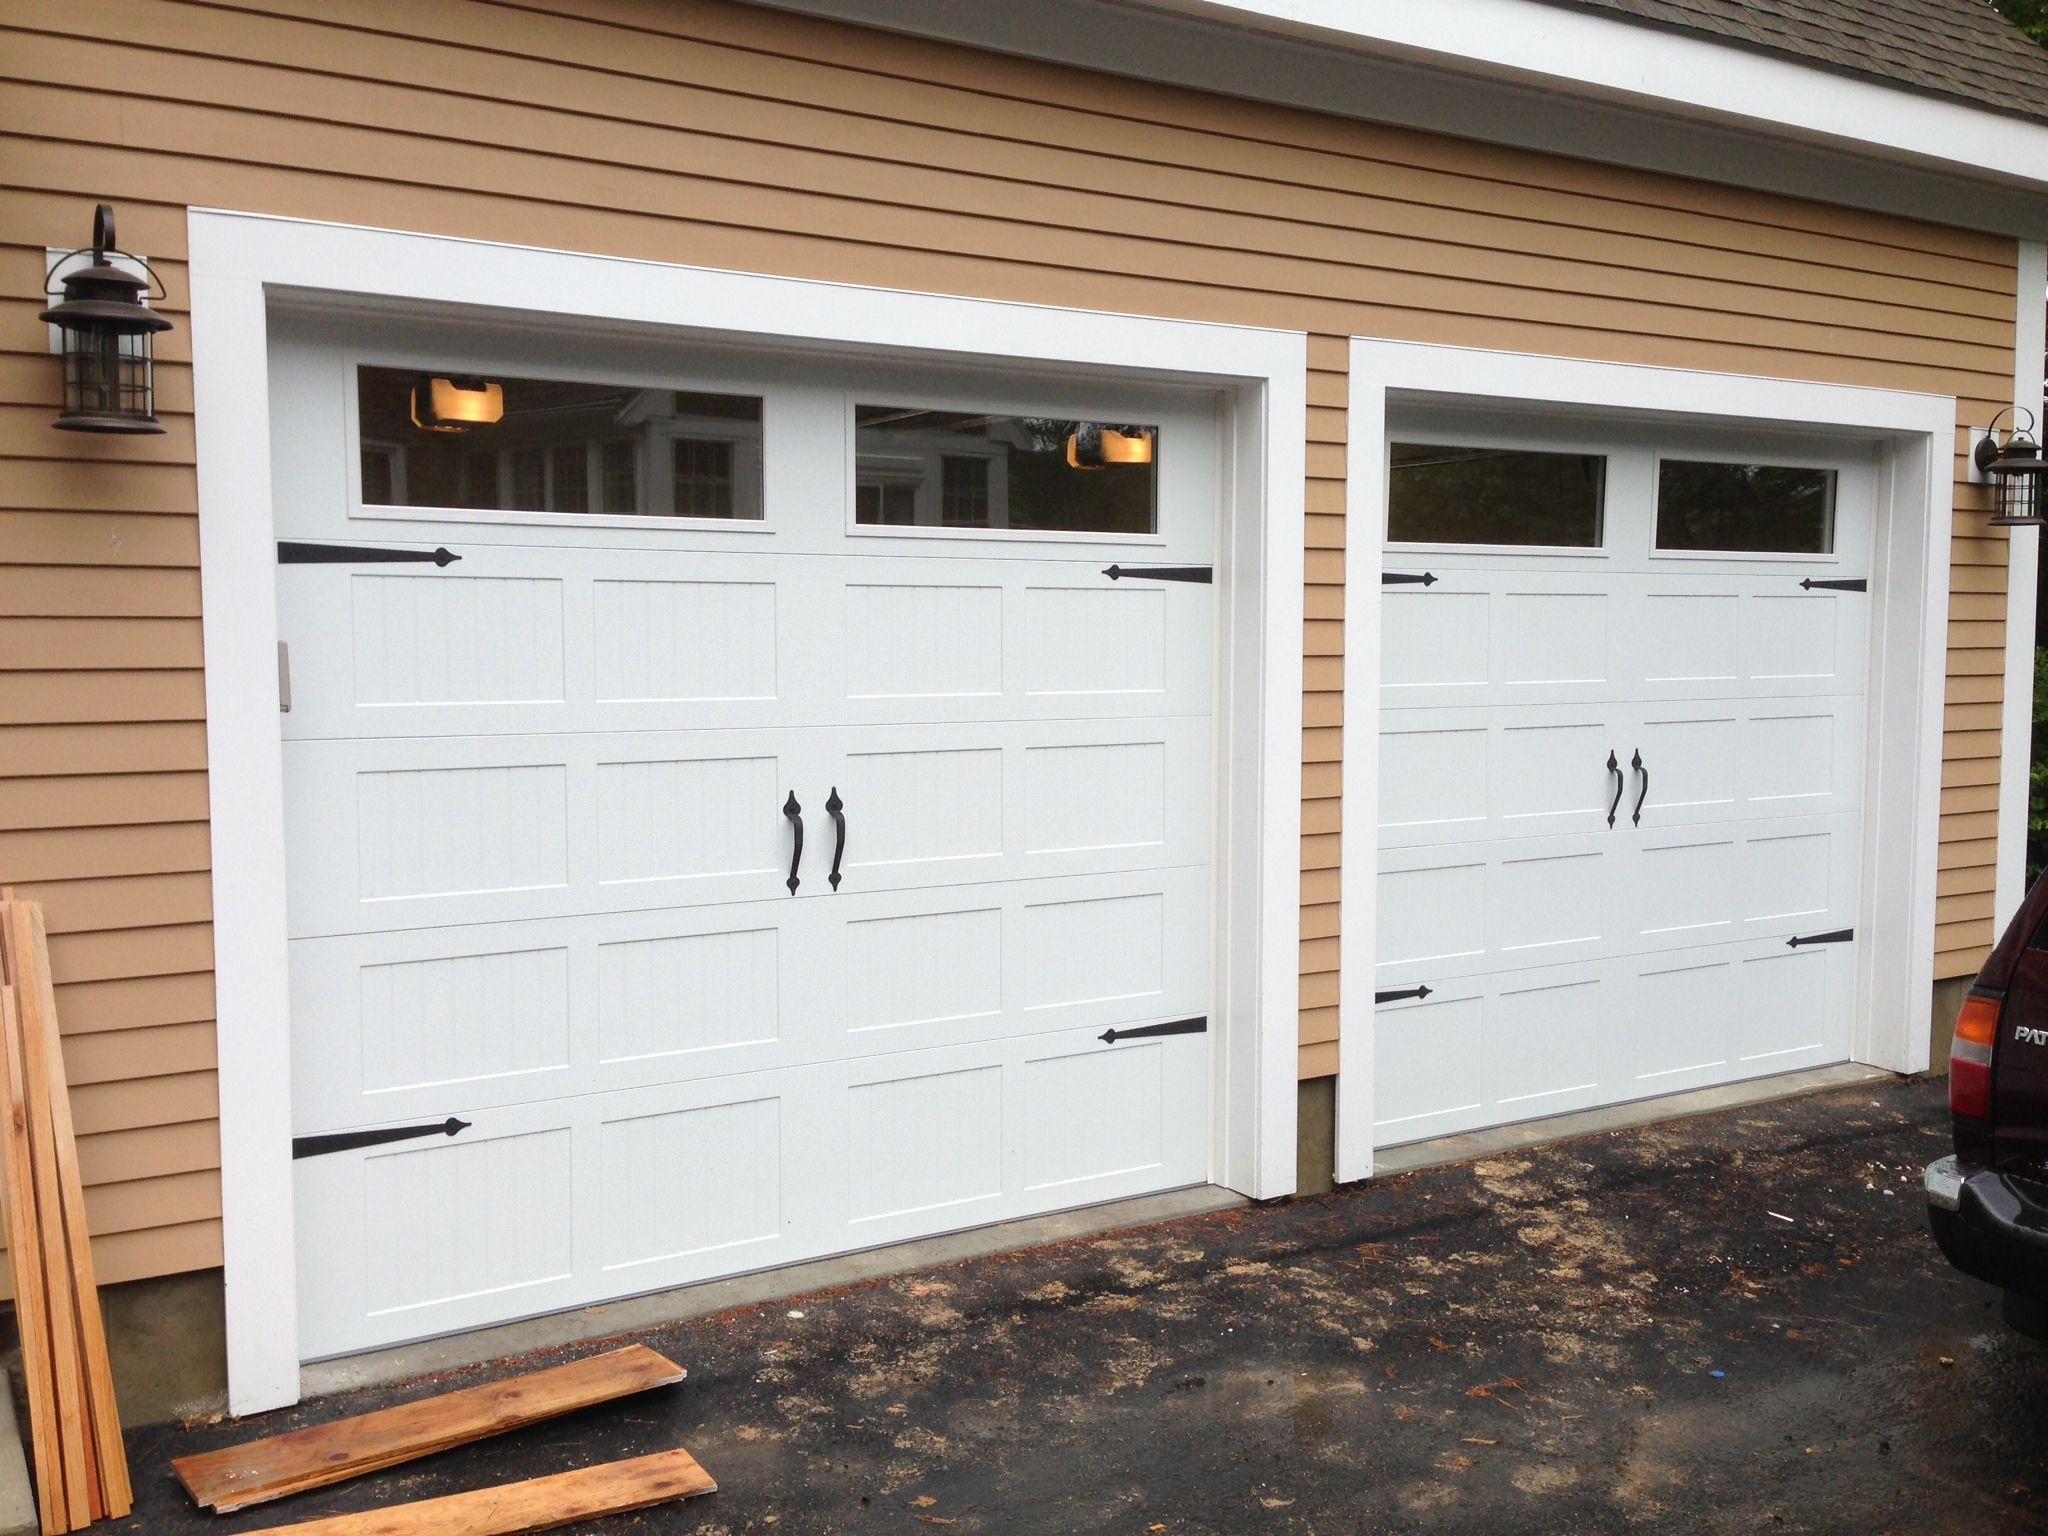 Chi overhead doors model 5216 steel carriage house style garage chi overhead doors model 5216 steel carriage house style garage doors in white with plain rubansaba